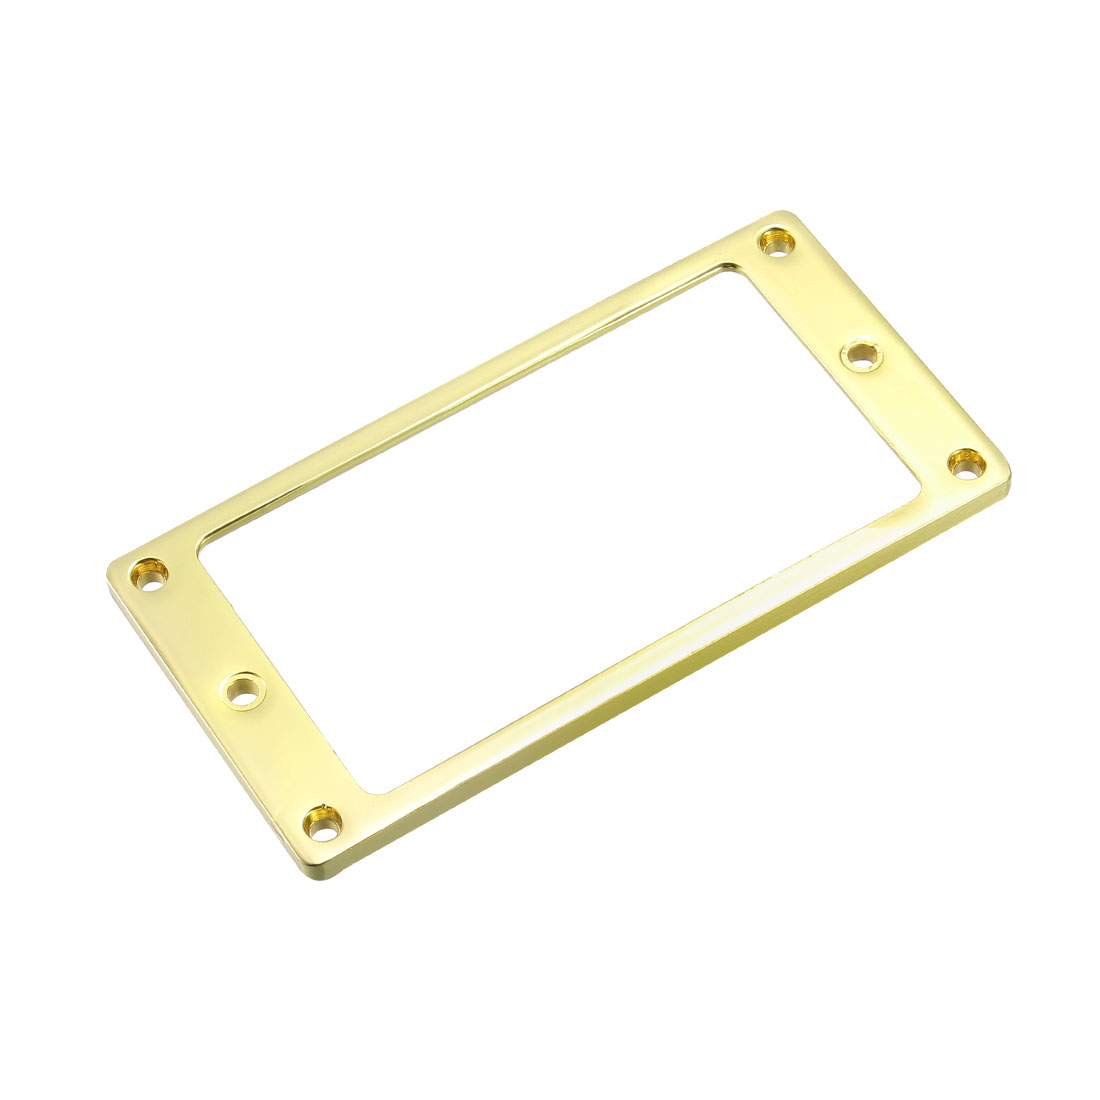 Humbucker Pickup Frame Mounting Rings Replacement for Electric Guitars Golden